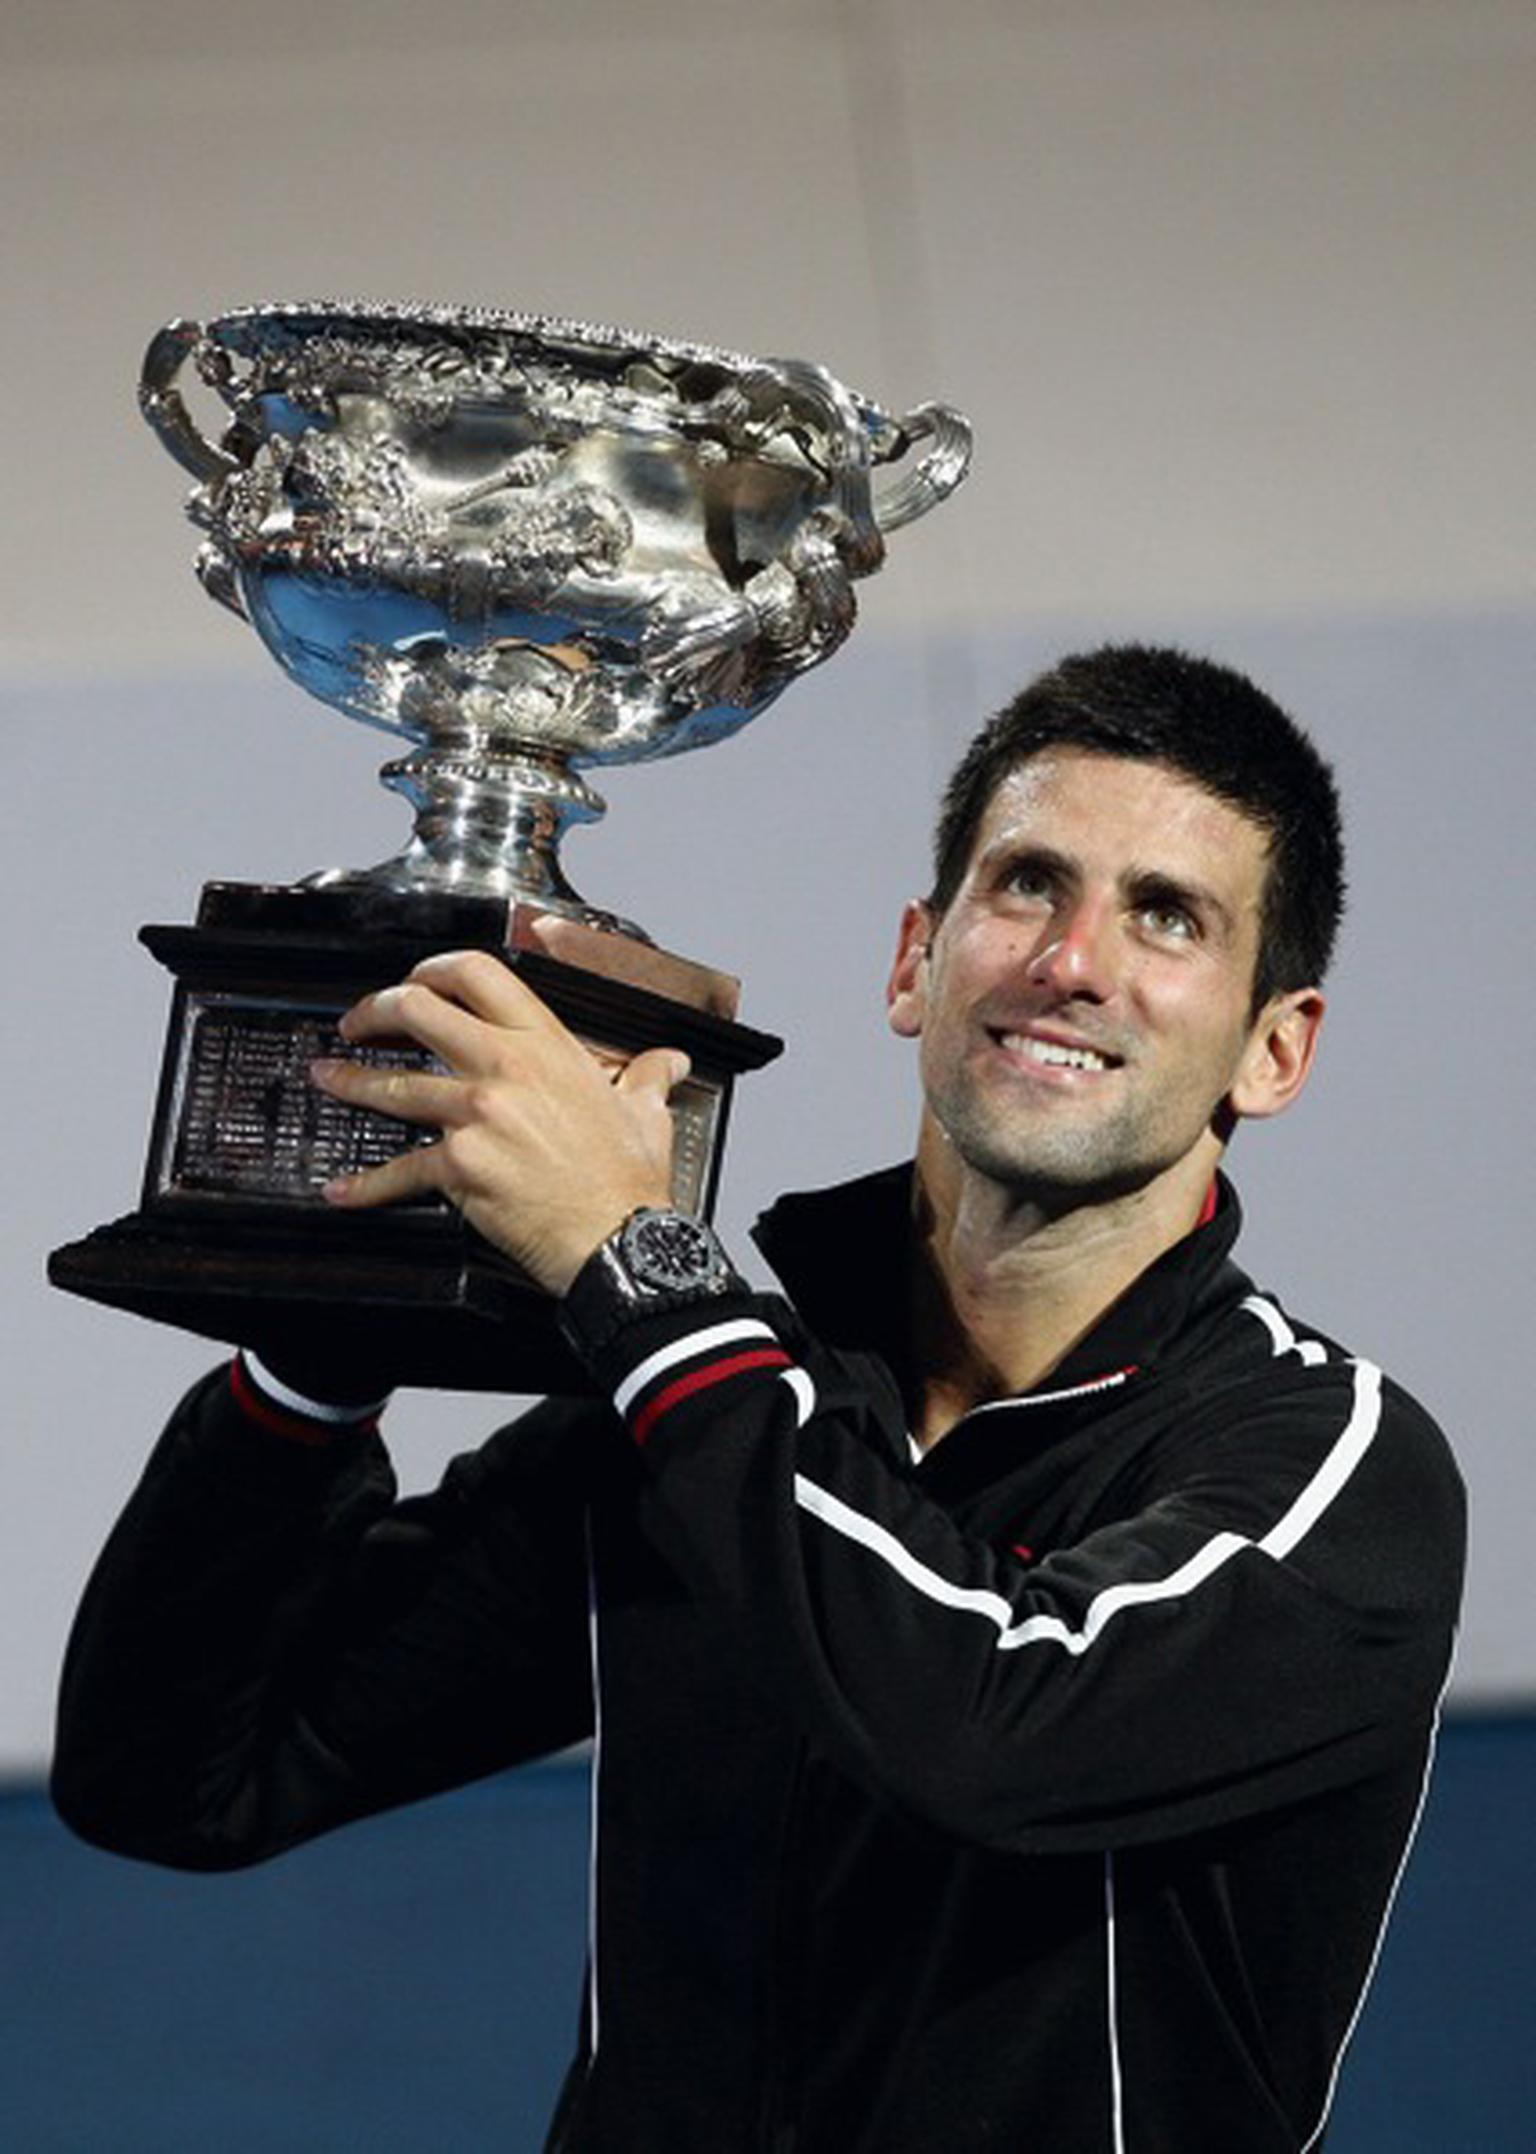 Audemars Piguet Royal Oak worn by Djokovic at Australian Open